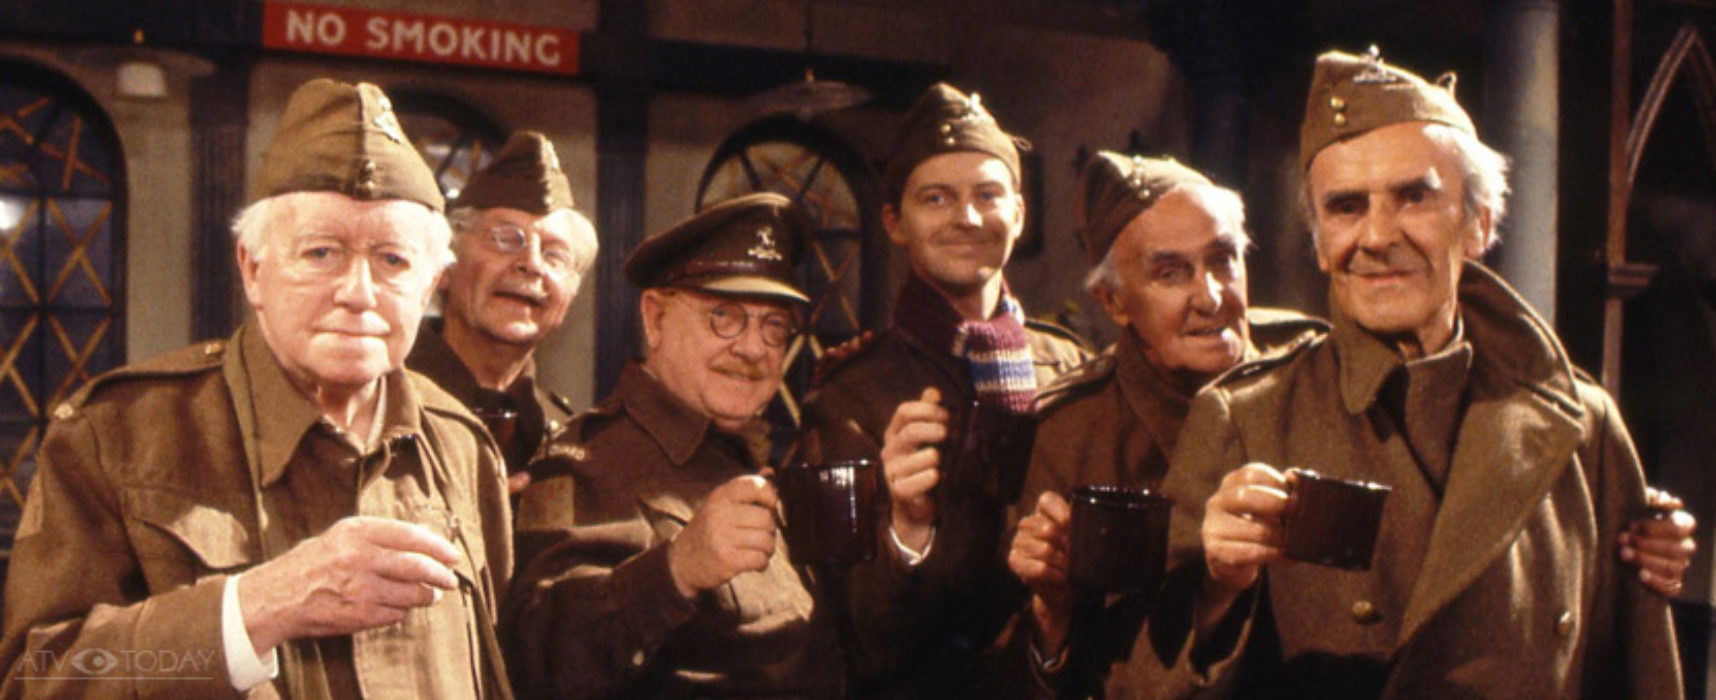 Dad's Army: The Lost Episodes cast revealed